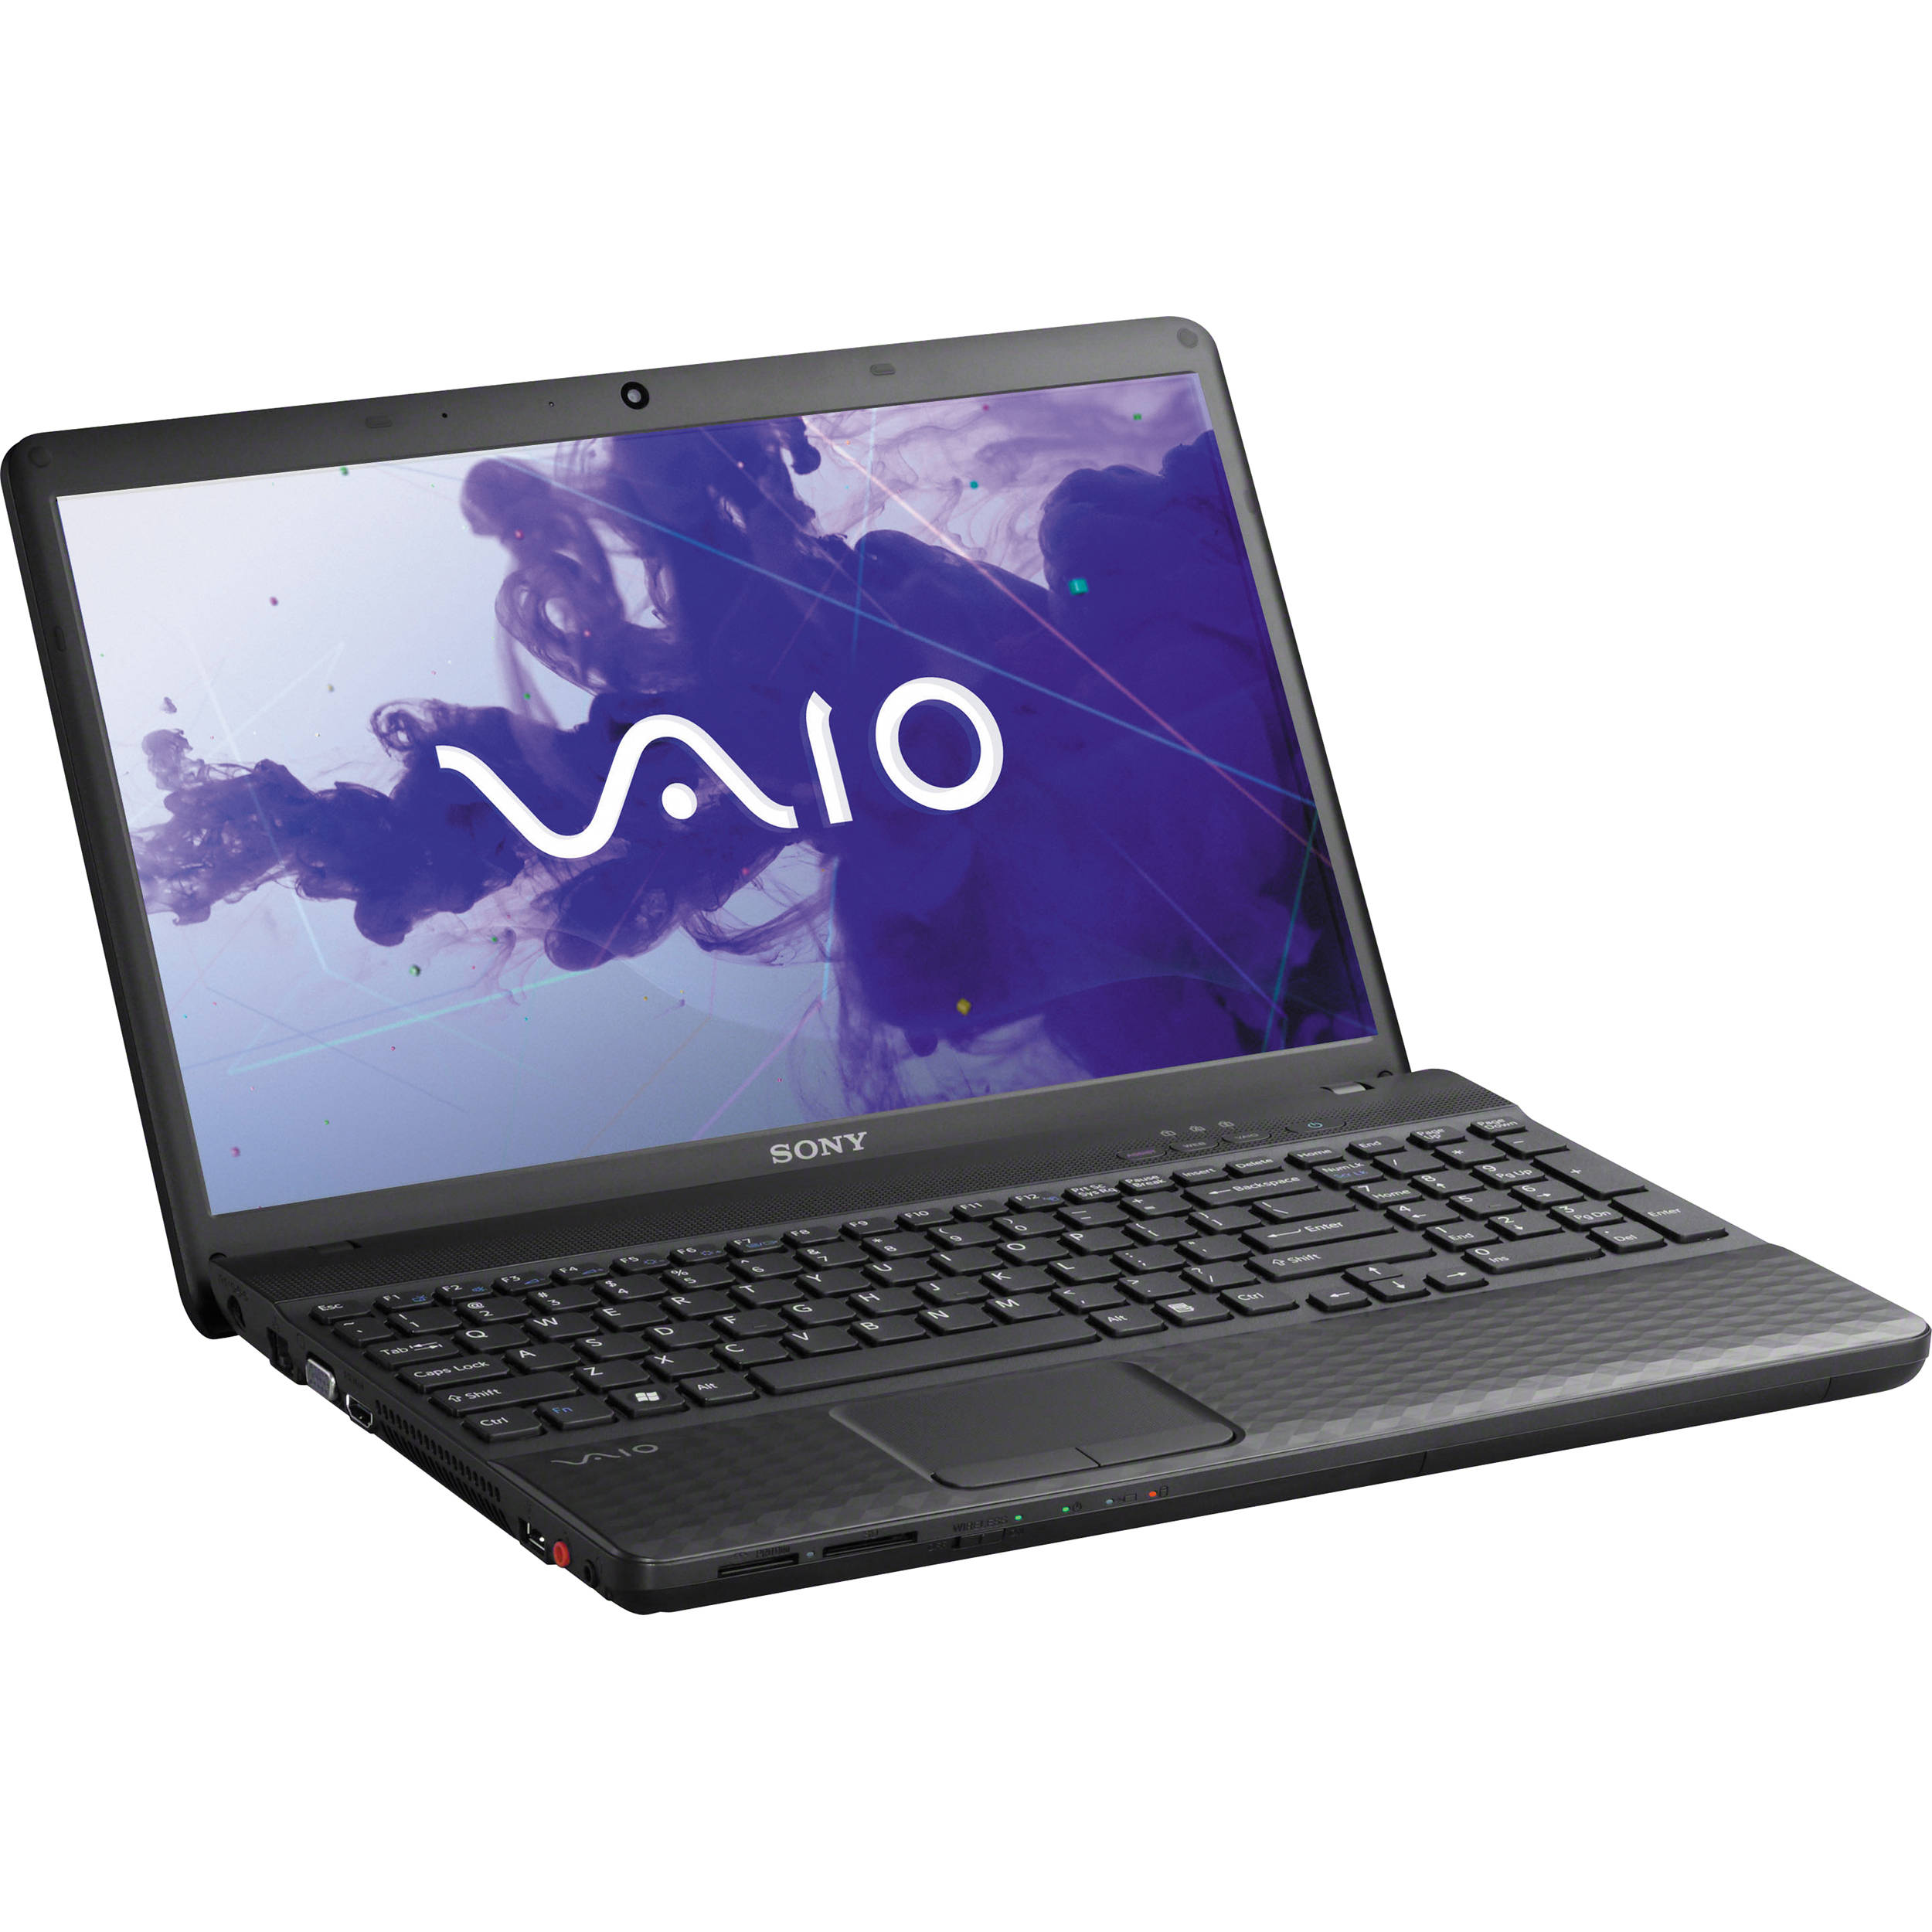 SONY VAIO VPCEH37FXW WINDOWS 7 DRIVER